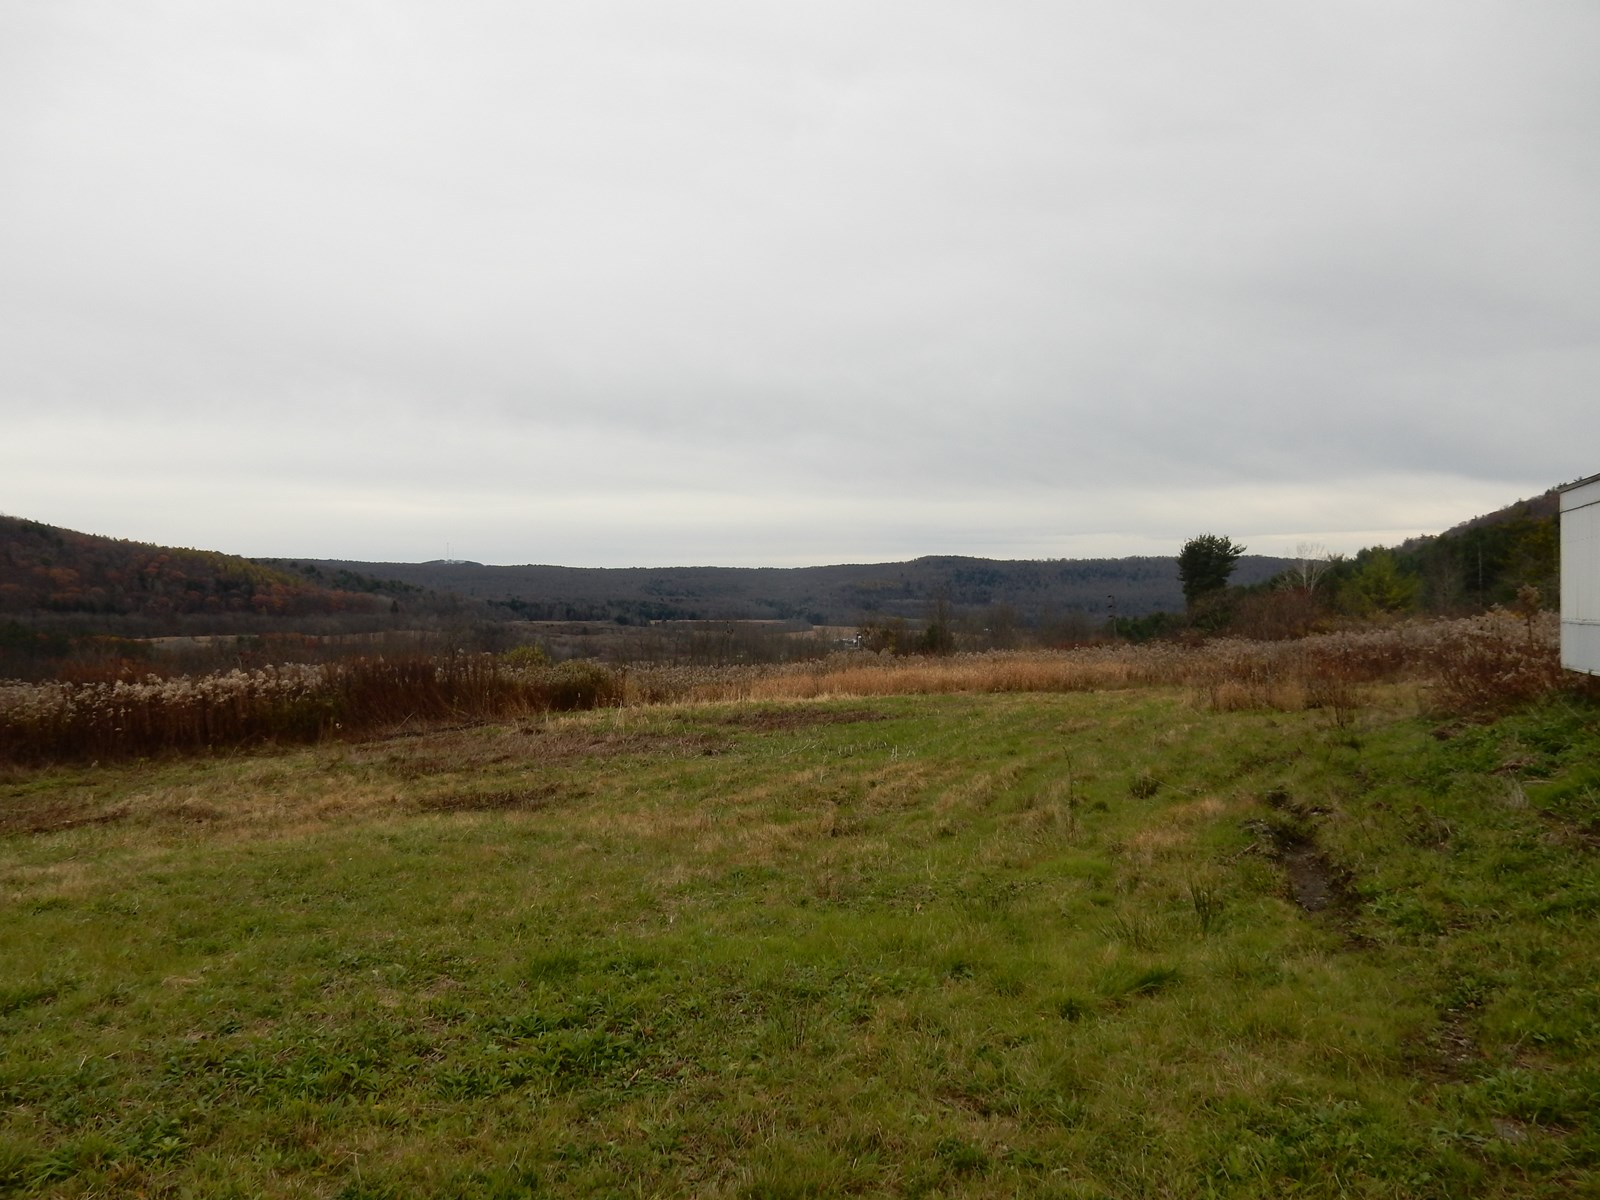 Outstanding views in Chenango County